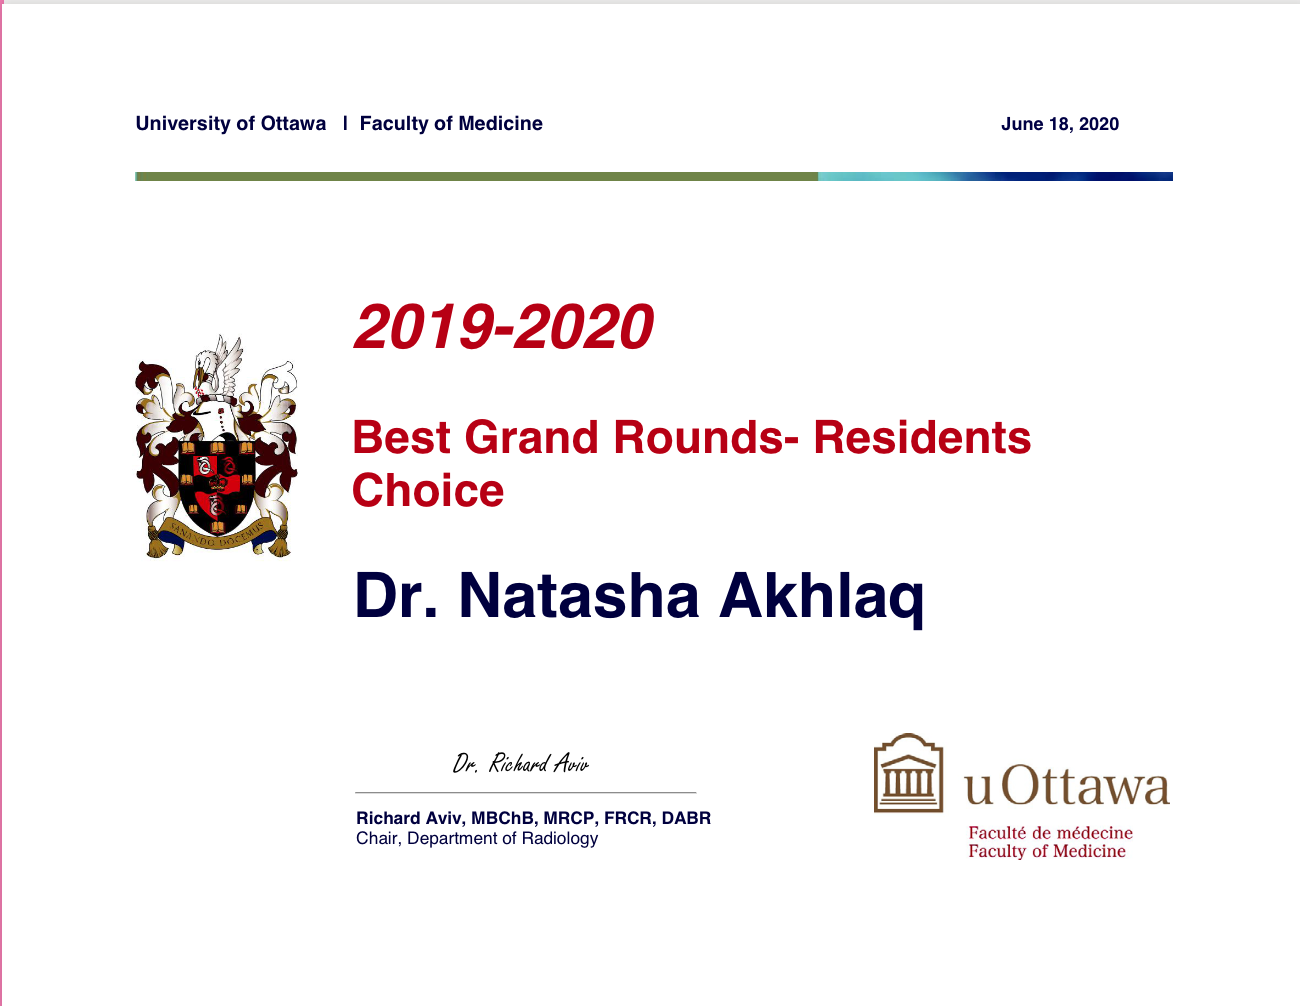 2019-2020 Best Grand Rounds - Residents Choice. Winner is Dr. Natasha Akhlaq